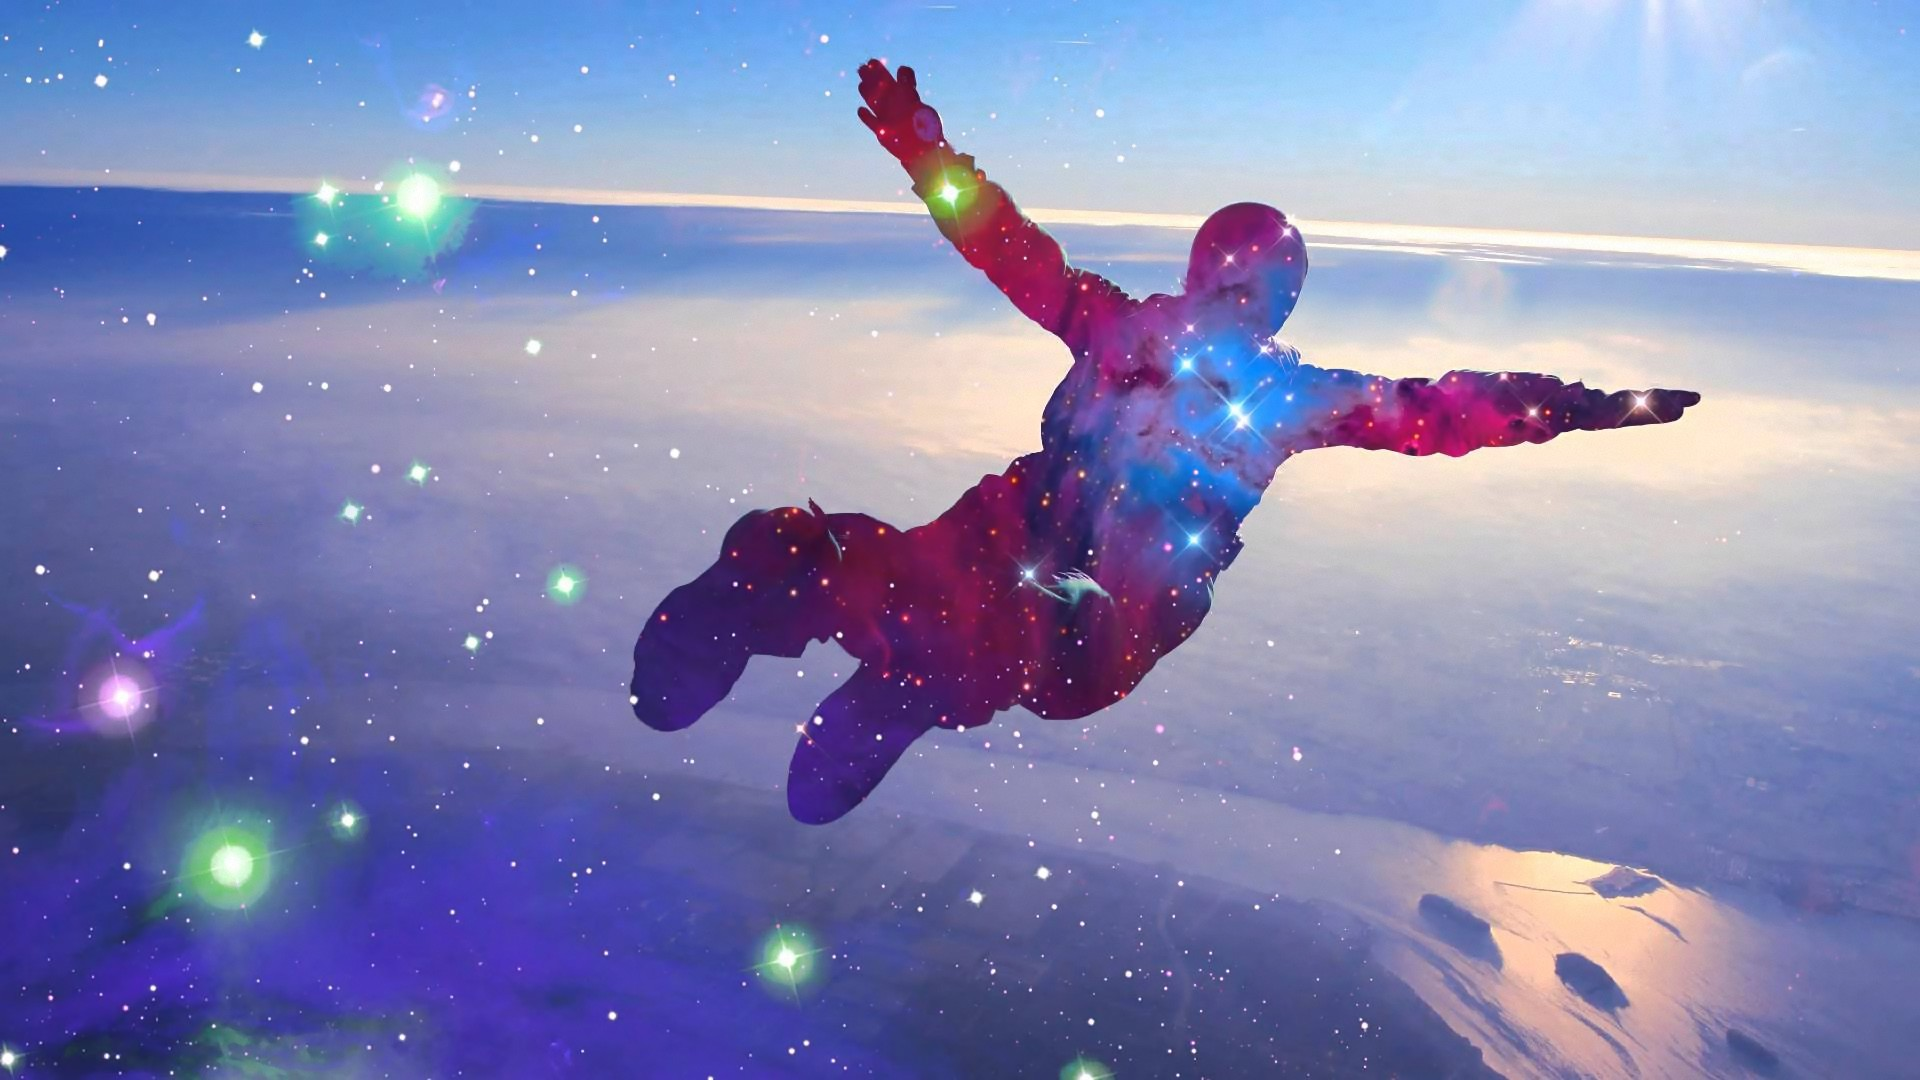 18 Awesome HD Skydiving Wallpapers